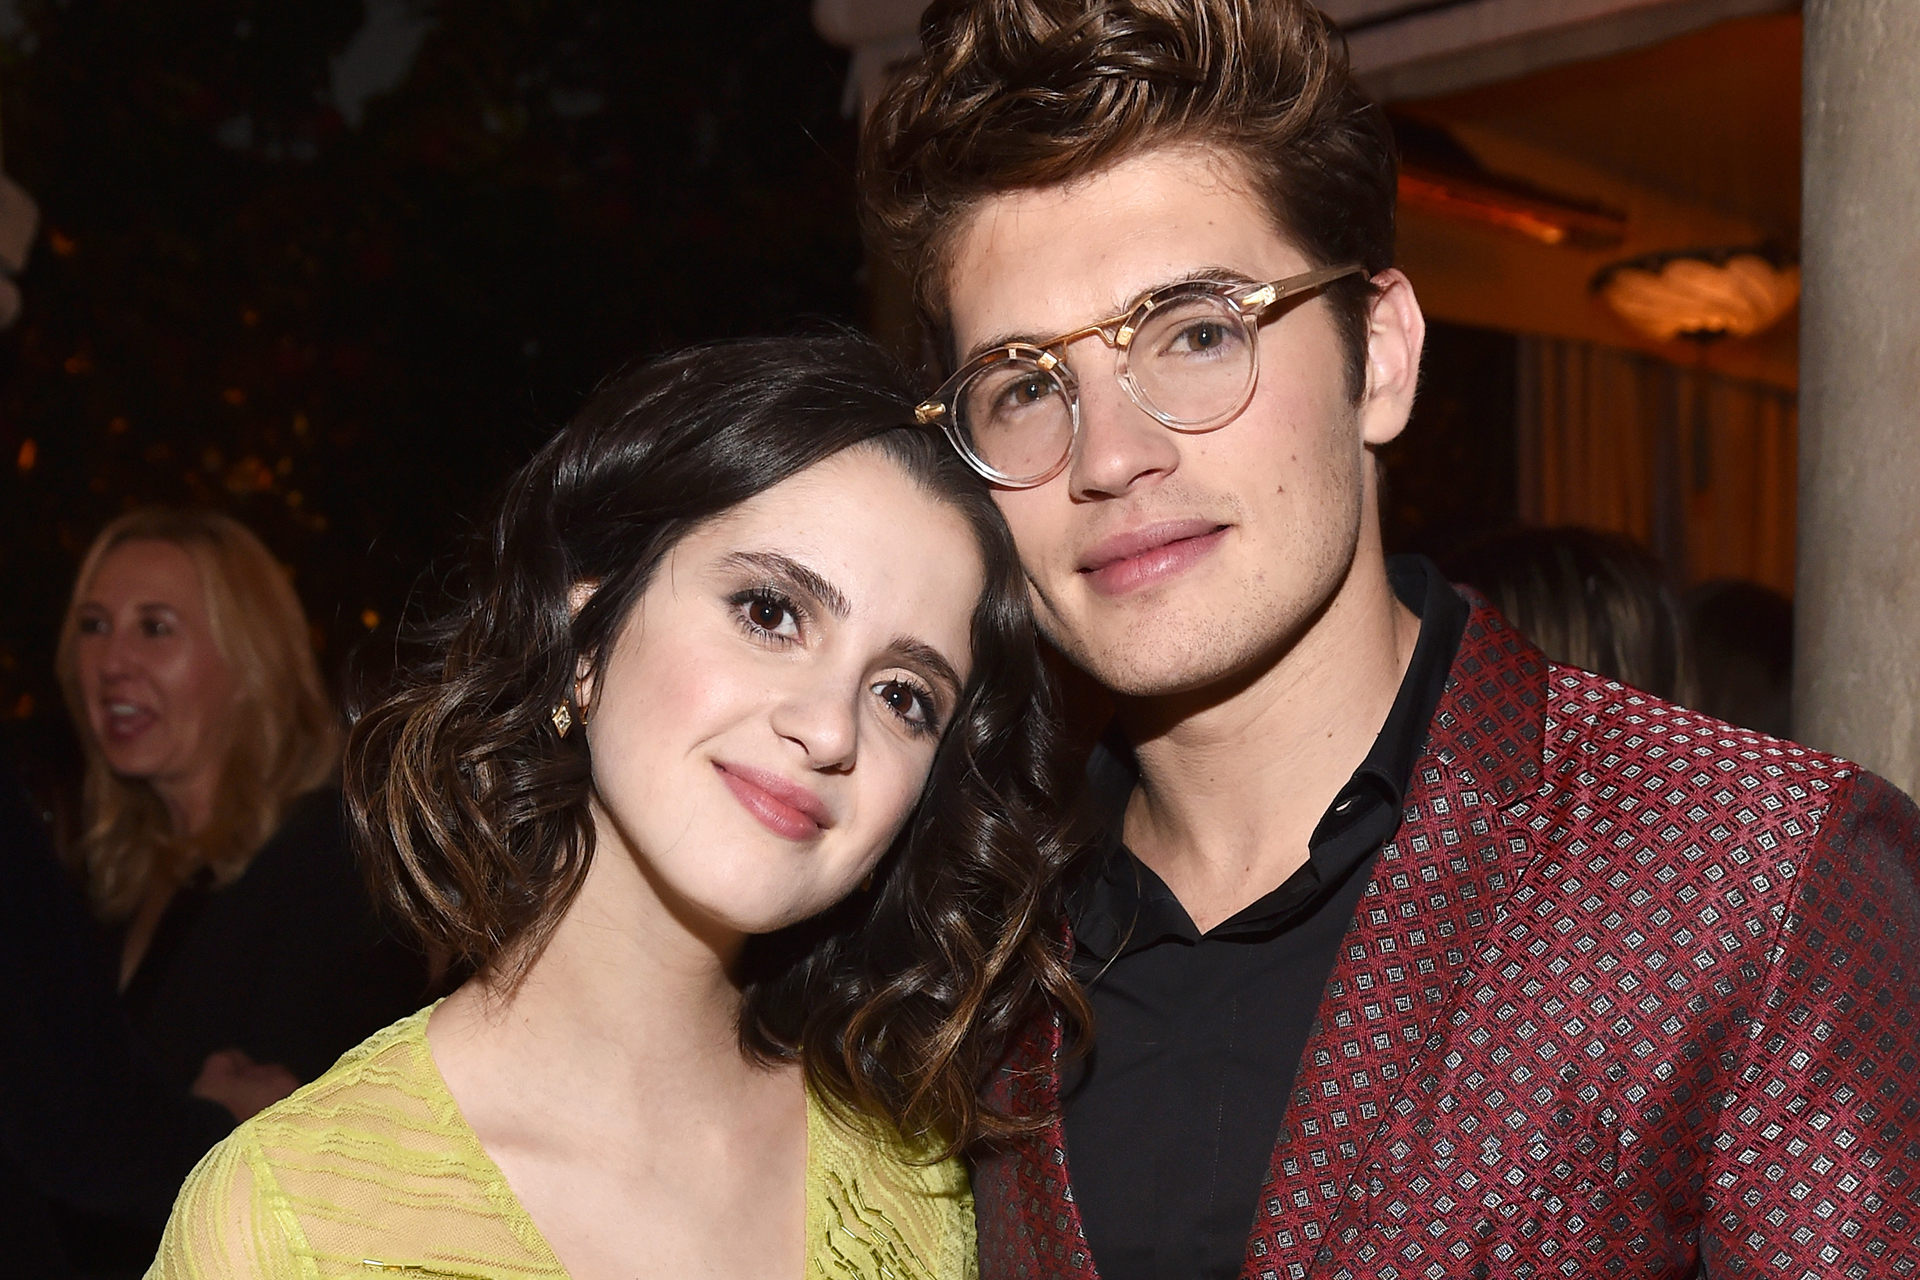 People Now: Laura Marano and Gregg Sulkin Answer Fan Questions Plus Dish on New Holiday Movie -Watch the Full Episode